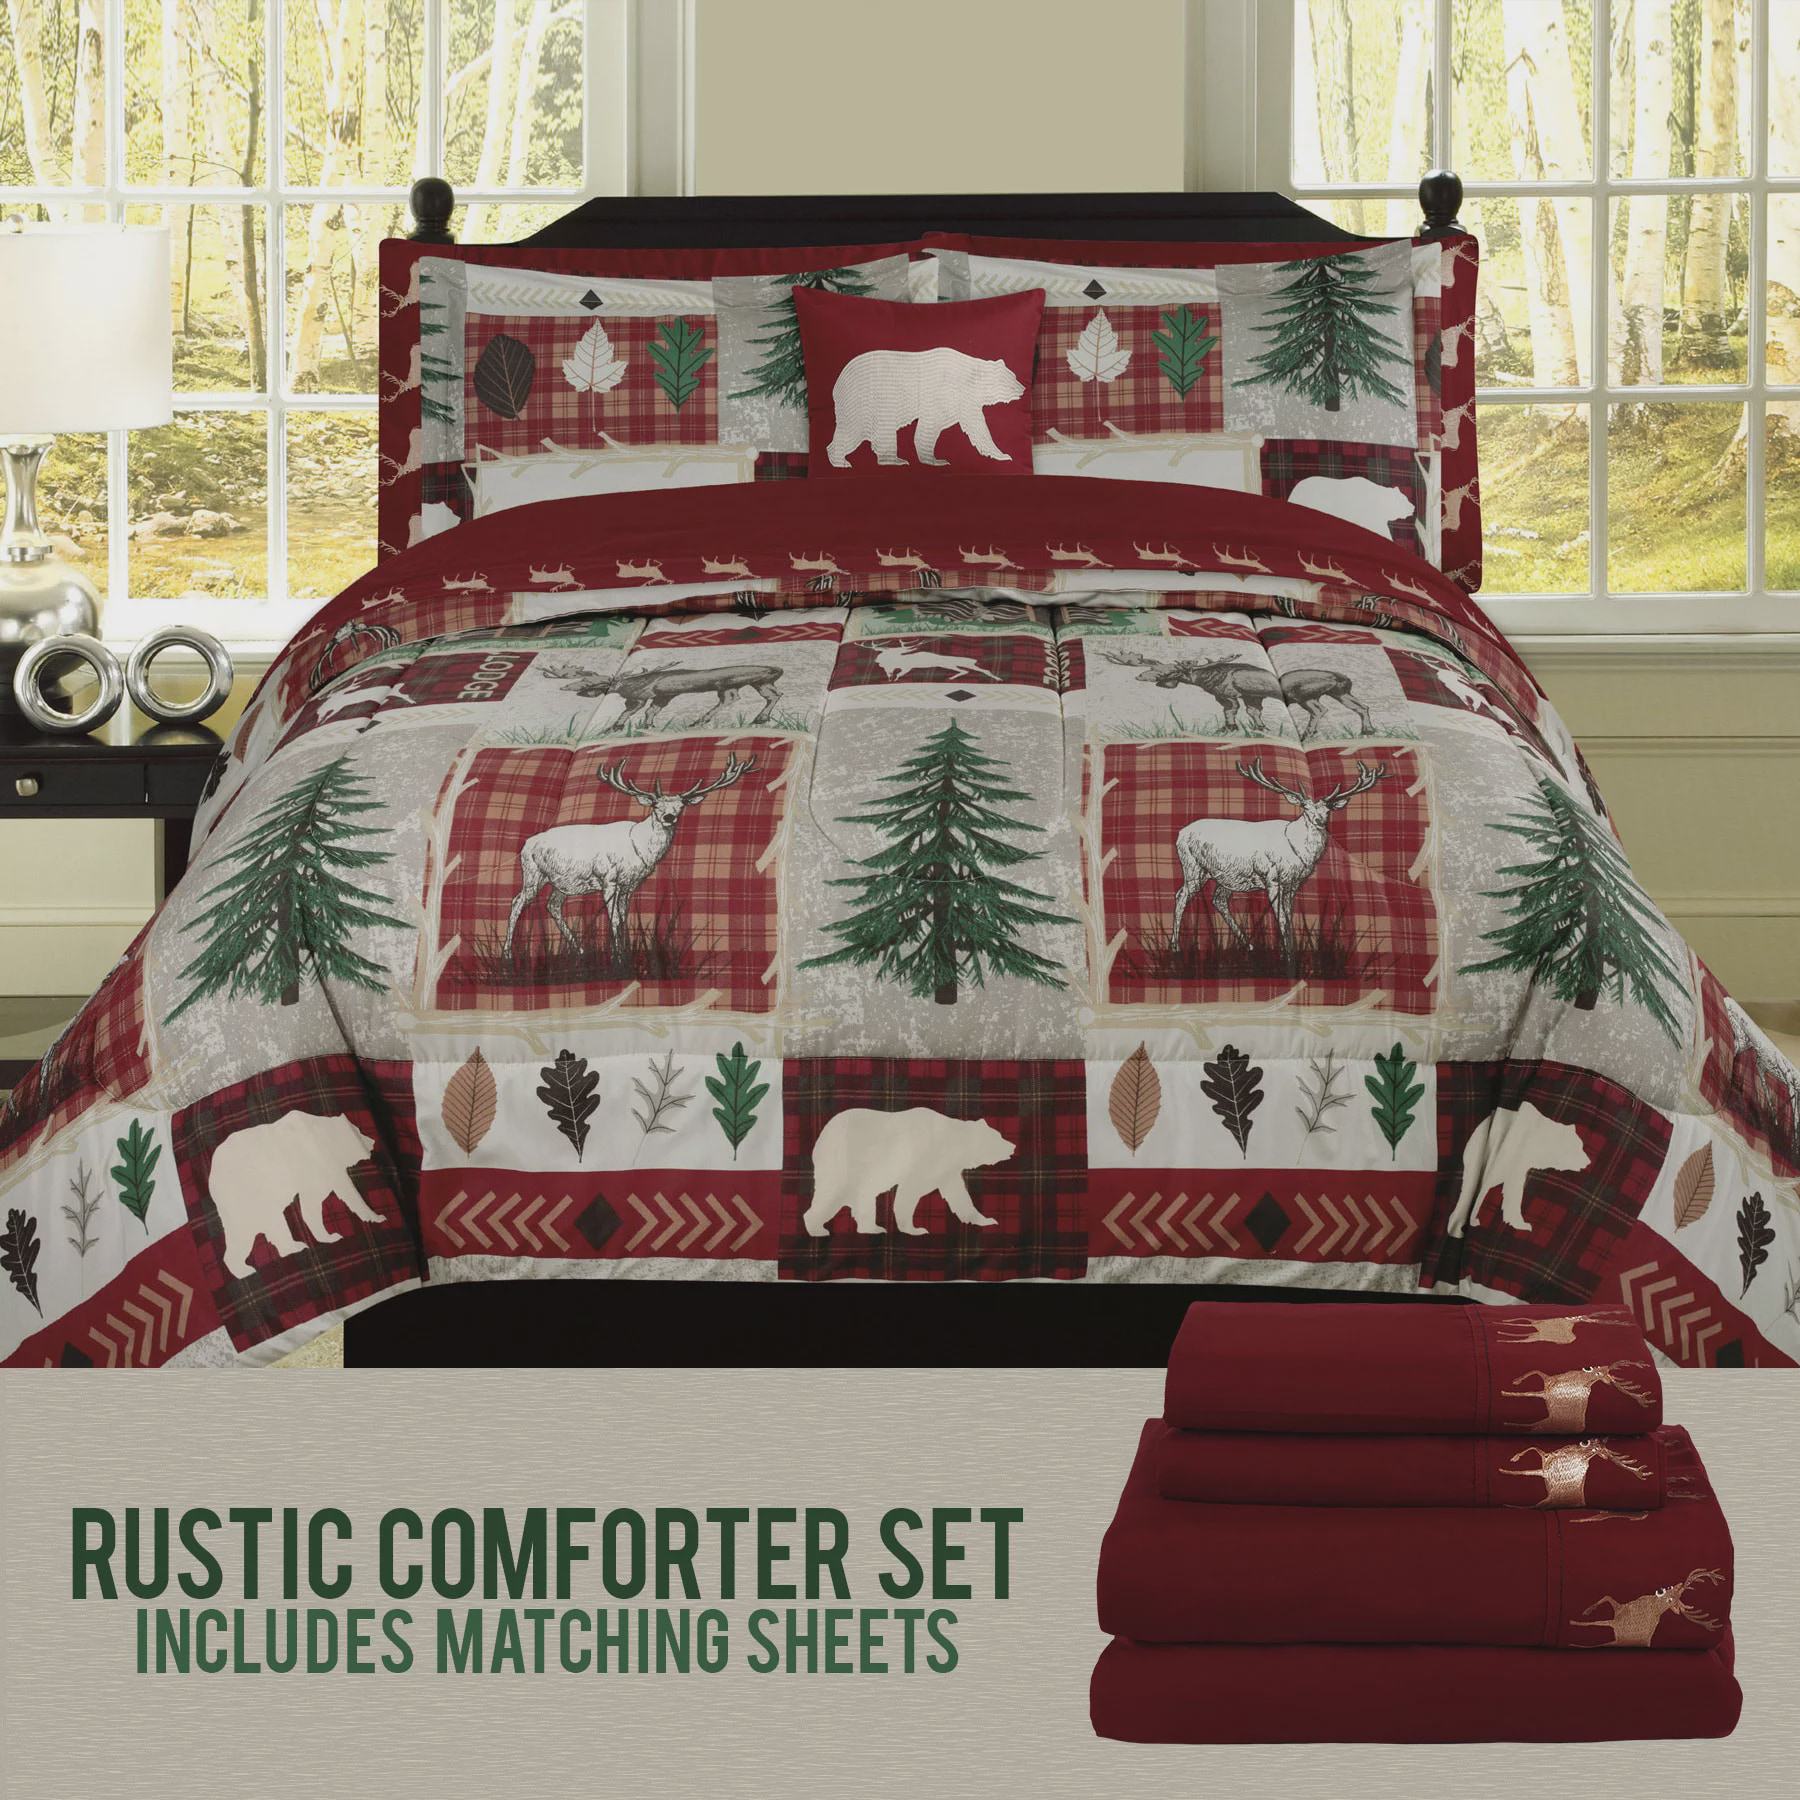 Bear Lodge Elk Rustic Queen Comforter 8 Piece Bedding And Deer Sheet Set Cabin Hunting Bed In A Bag Walmart Com Walmart Com